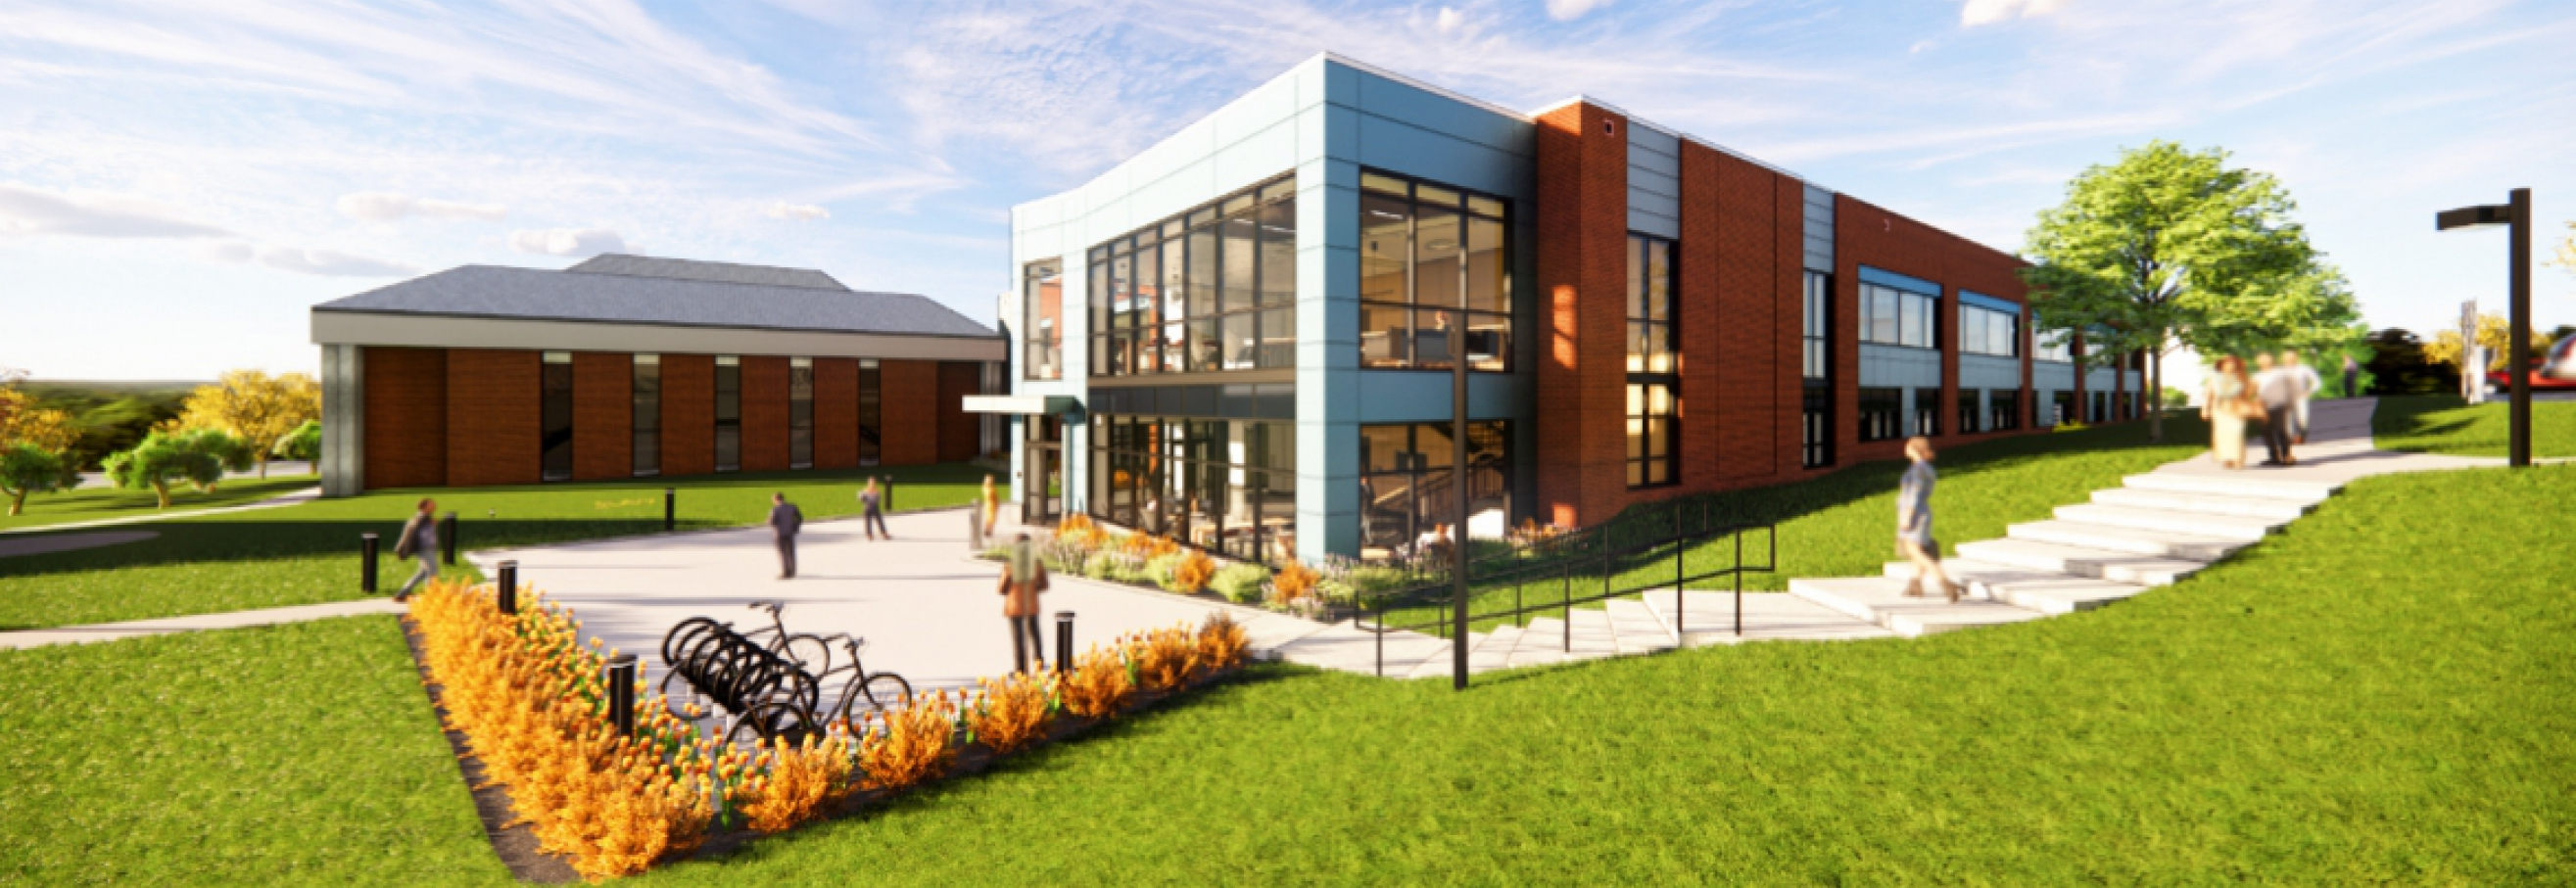 Architectural rendering of Life Sciences building